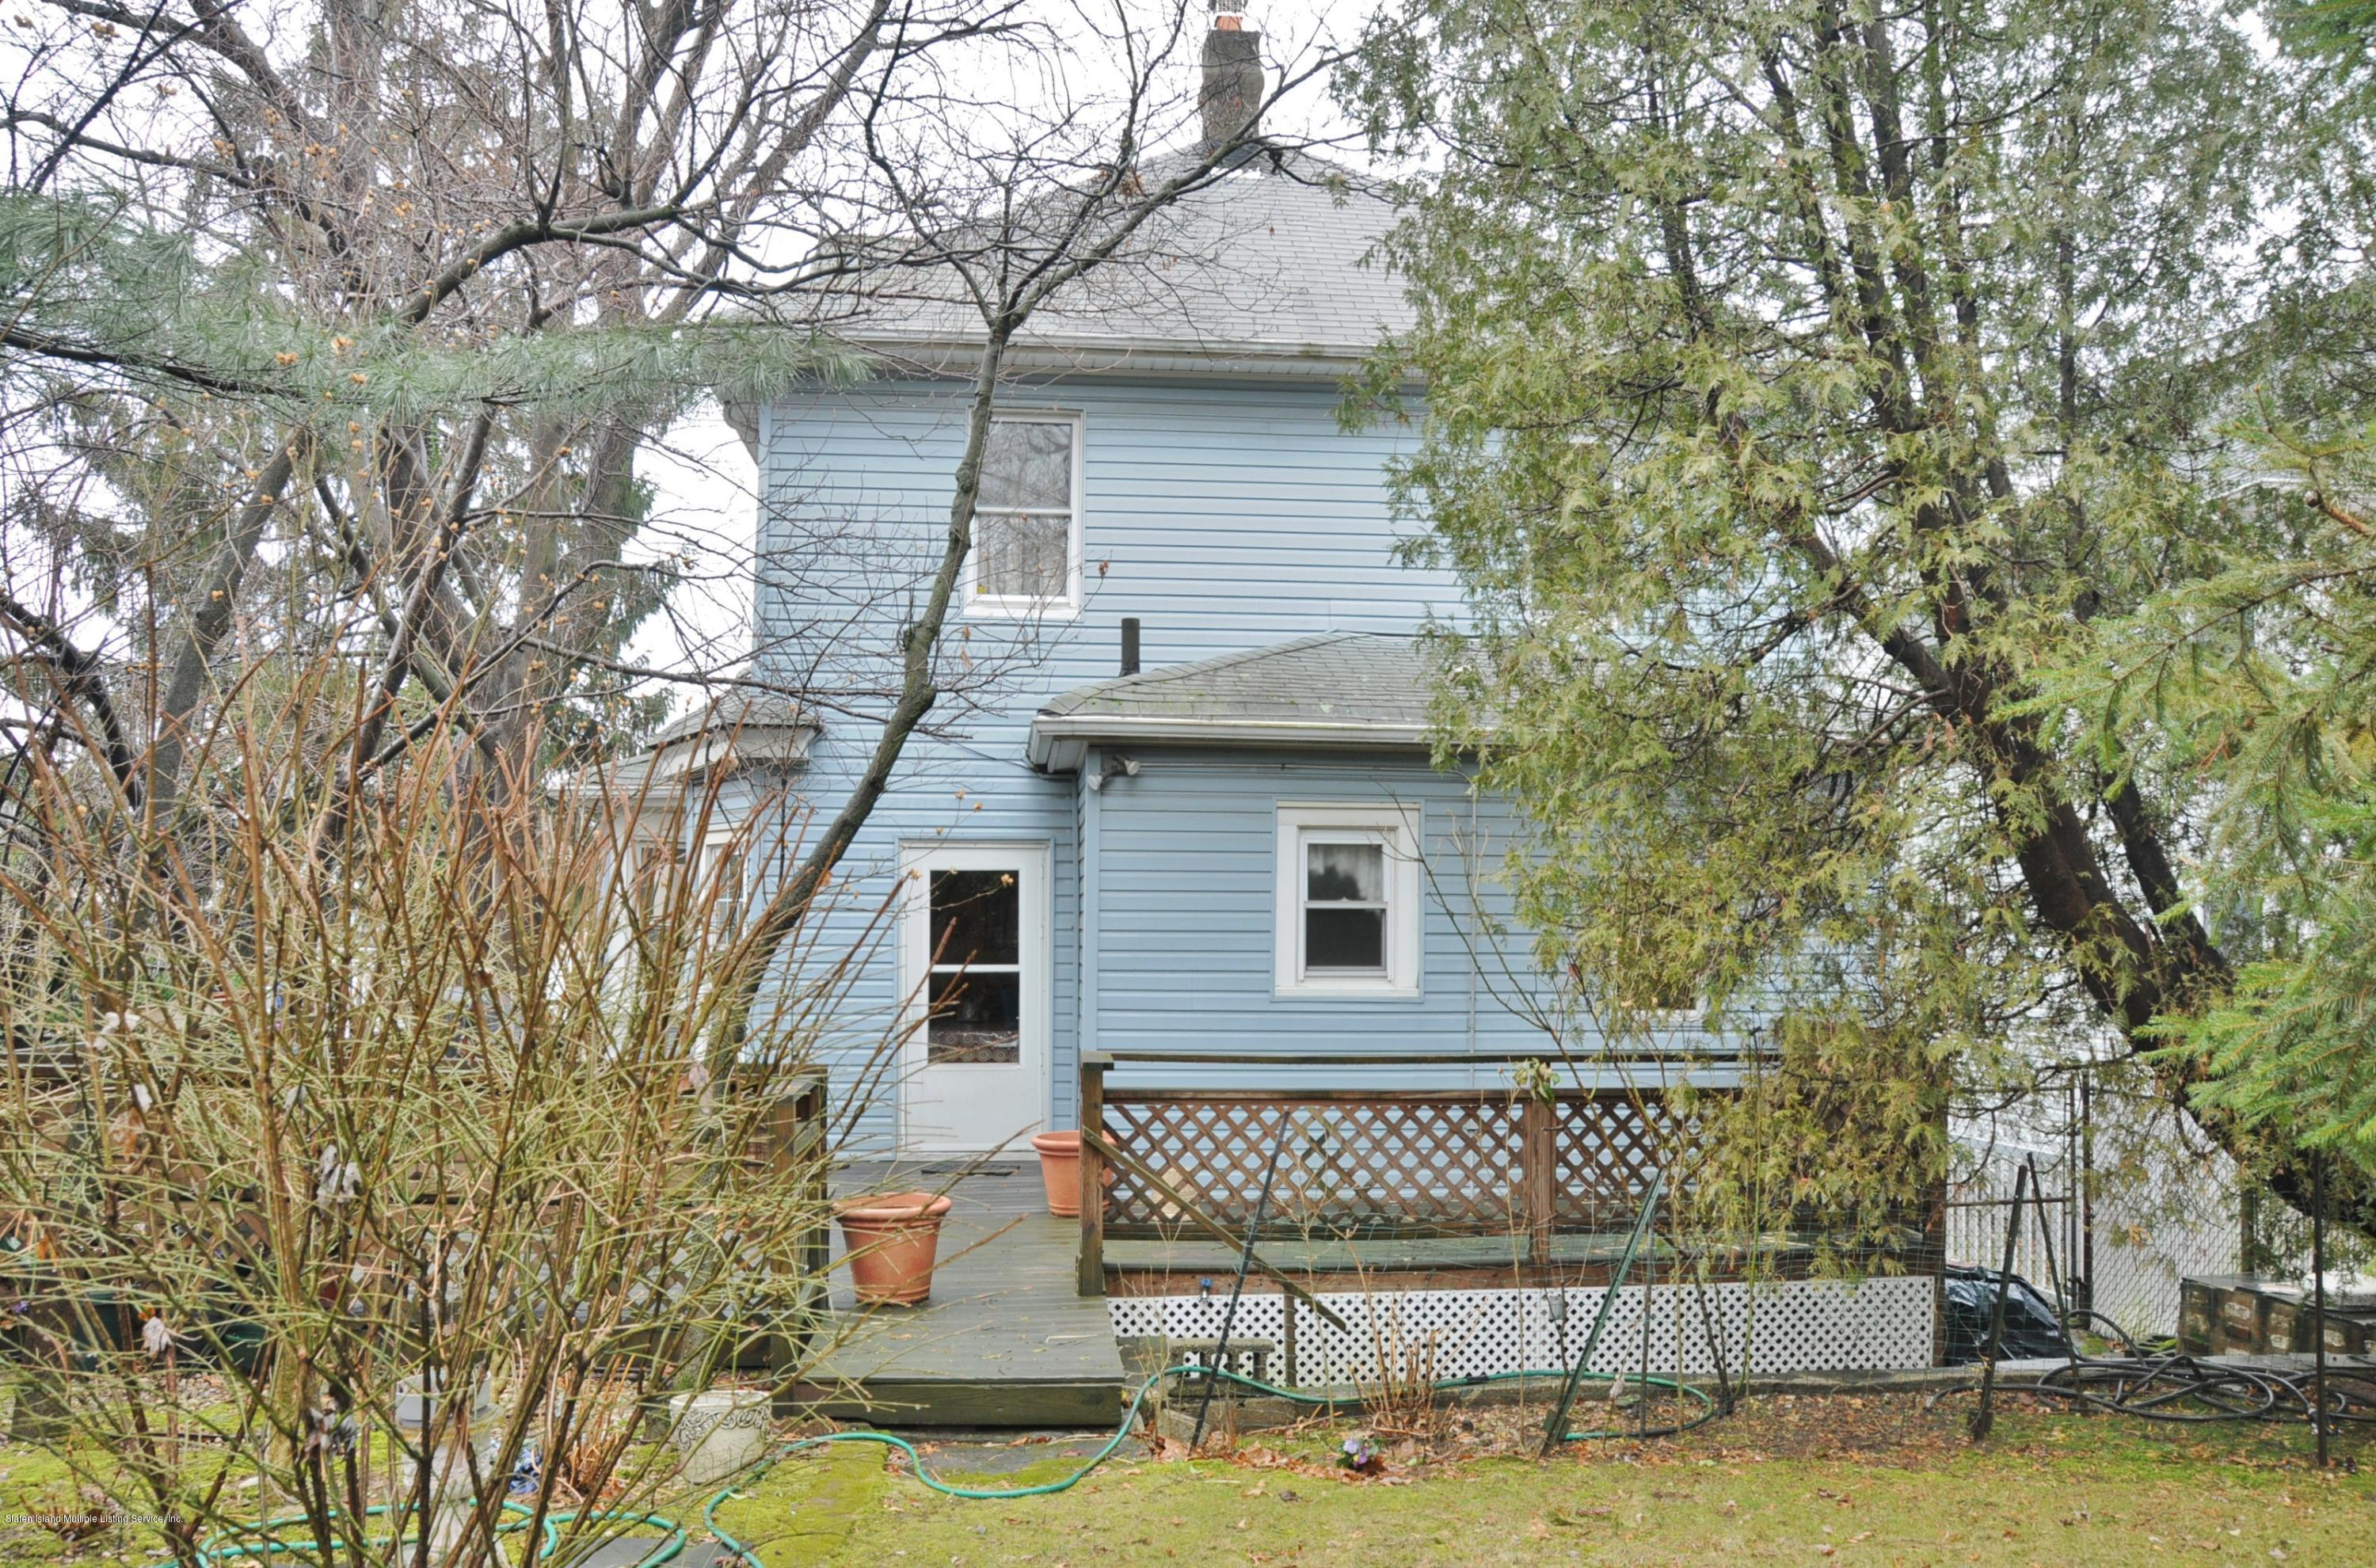 Single Family - Detached 383 Livermore Avenue  Staten Island, NY 10314, MLS-1126135-31